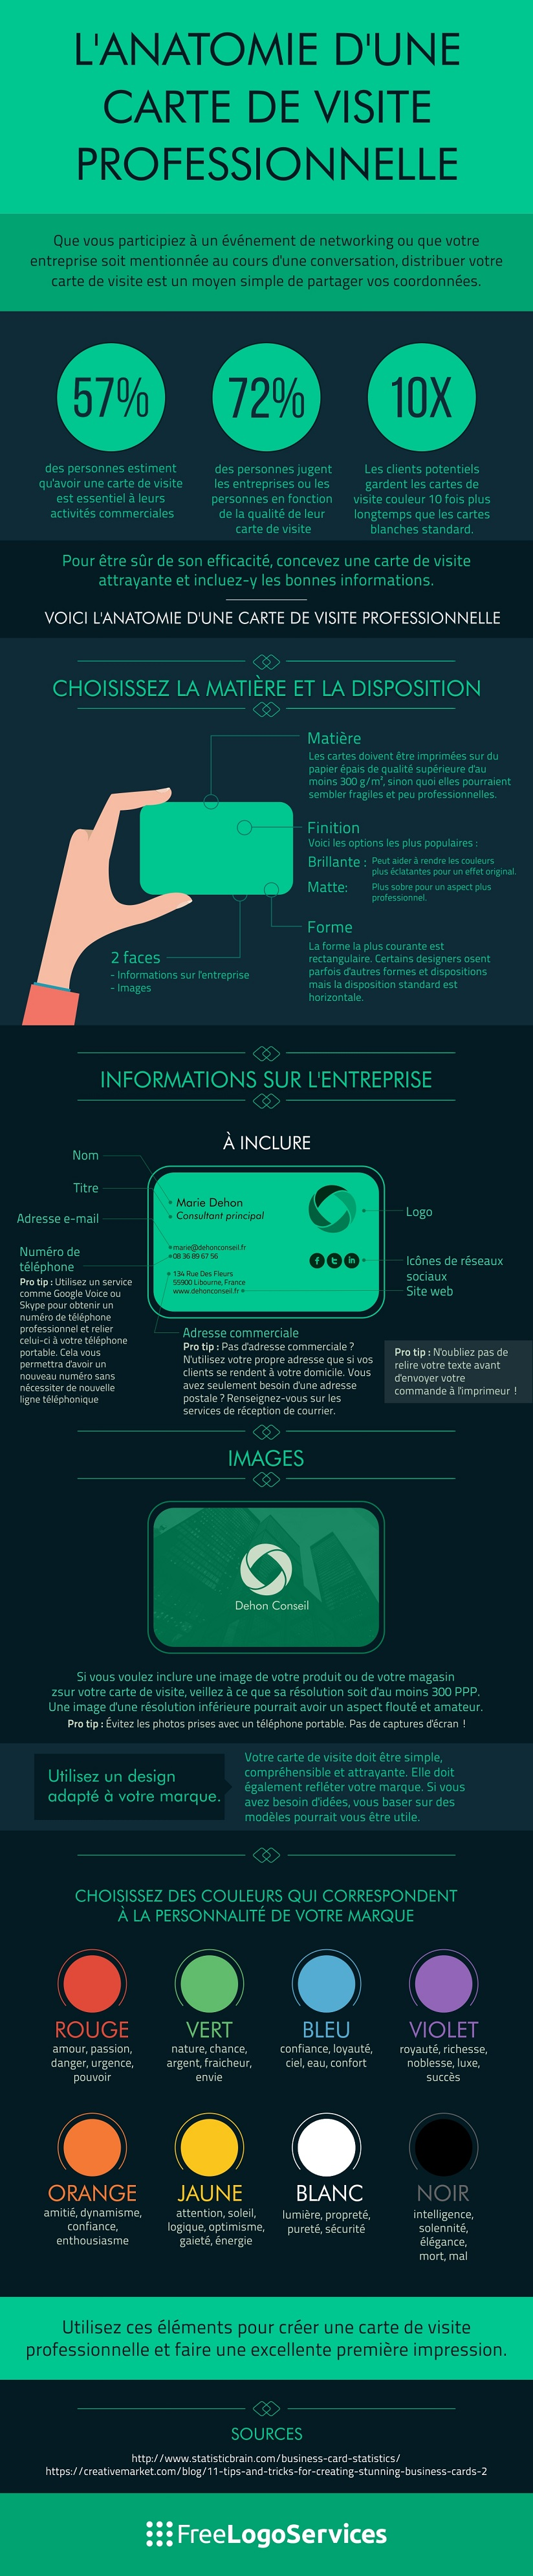 Infographic showing the basic information that should be on a business card design